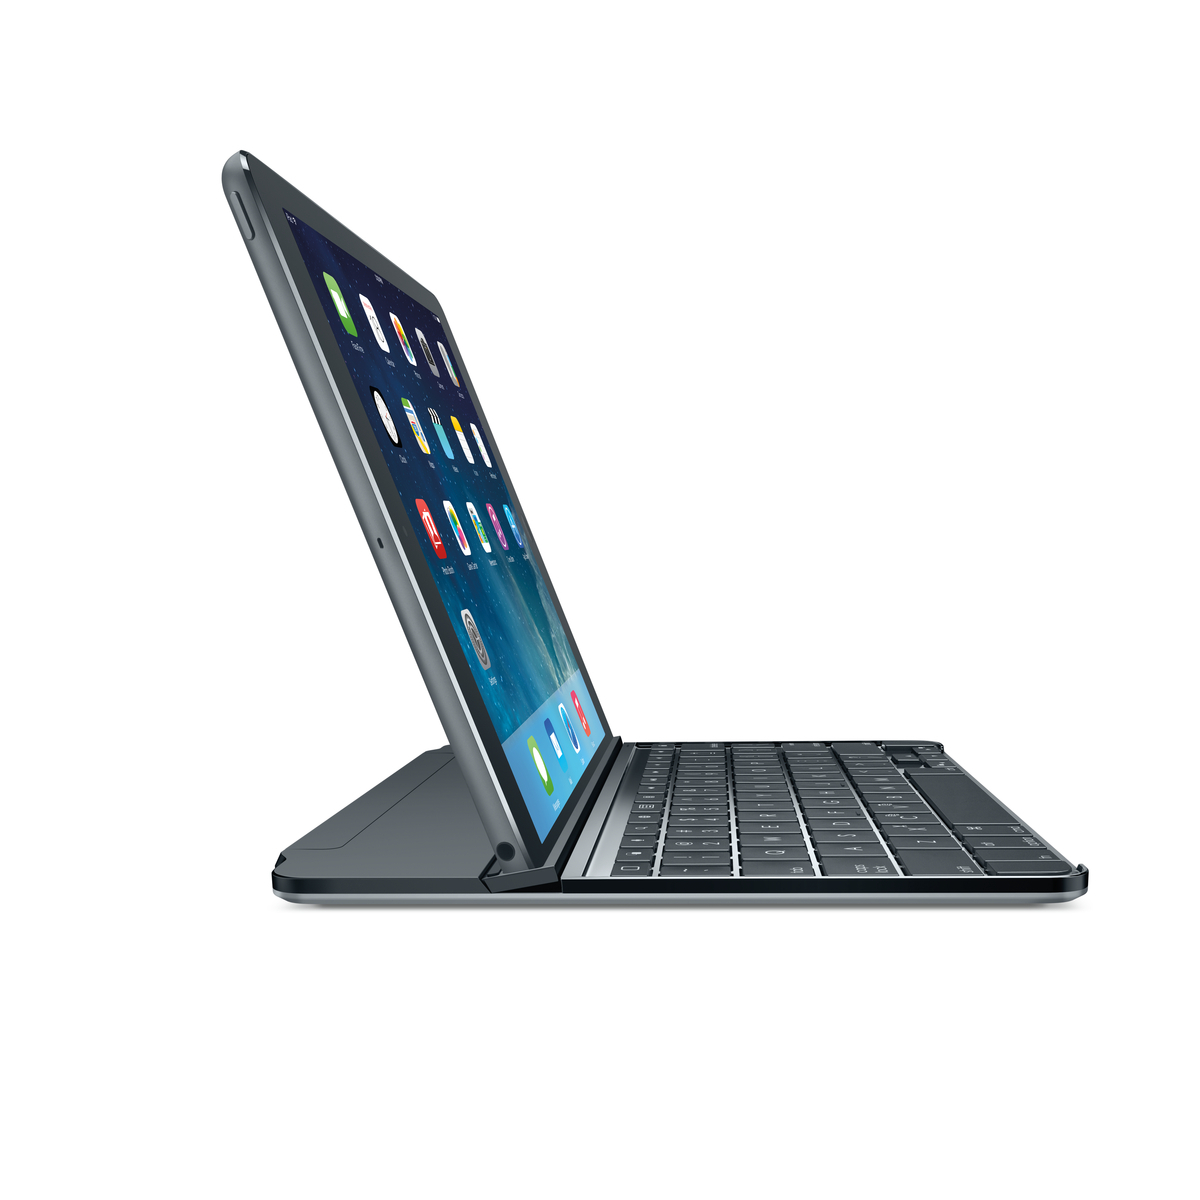 The new Logitech Ultrathin for iPad Air, iPad mini and iPad mini with Retina display improves the flexibility and design of its award-winning predecessor with an even thinner and lighter keyboard cover, and a new multi-angle slot that adds the freedom to adjust the viewing angle. (Photo: Business Wire)